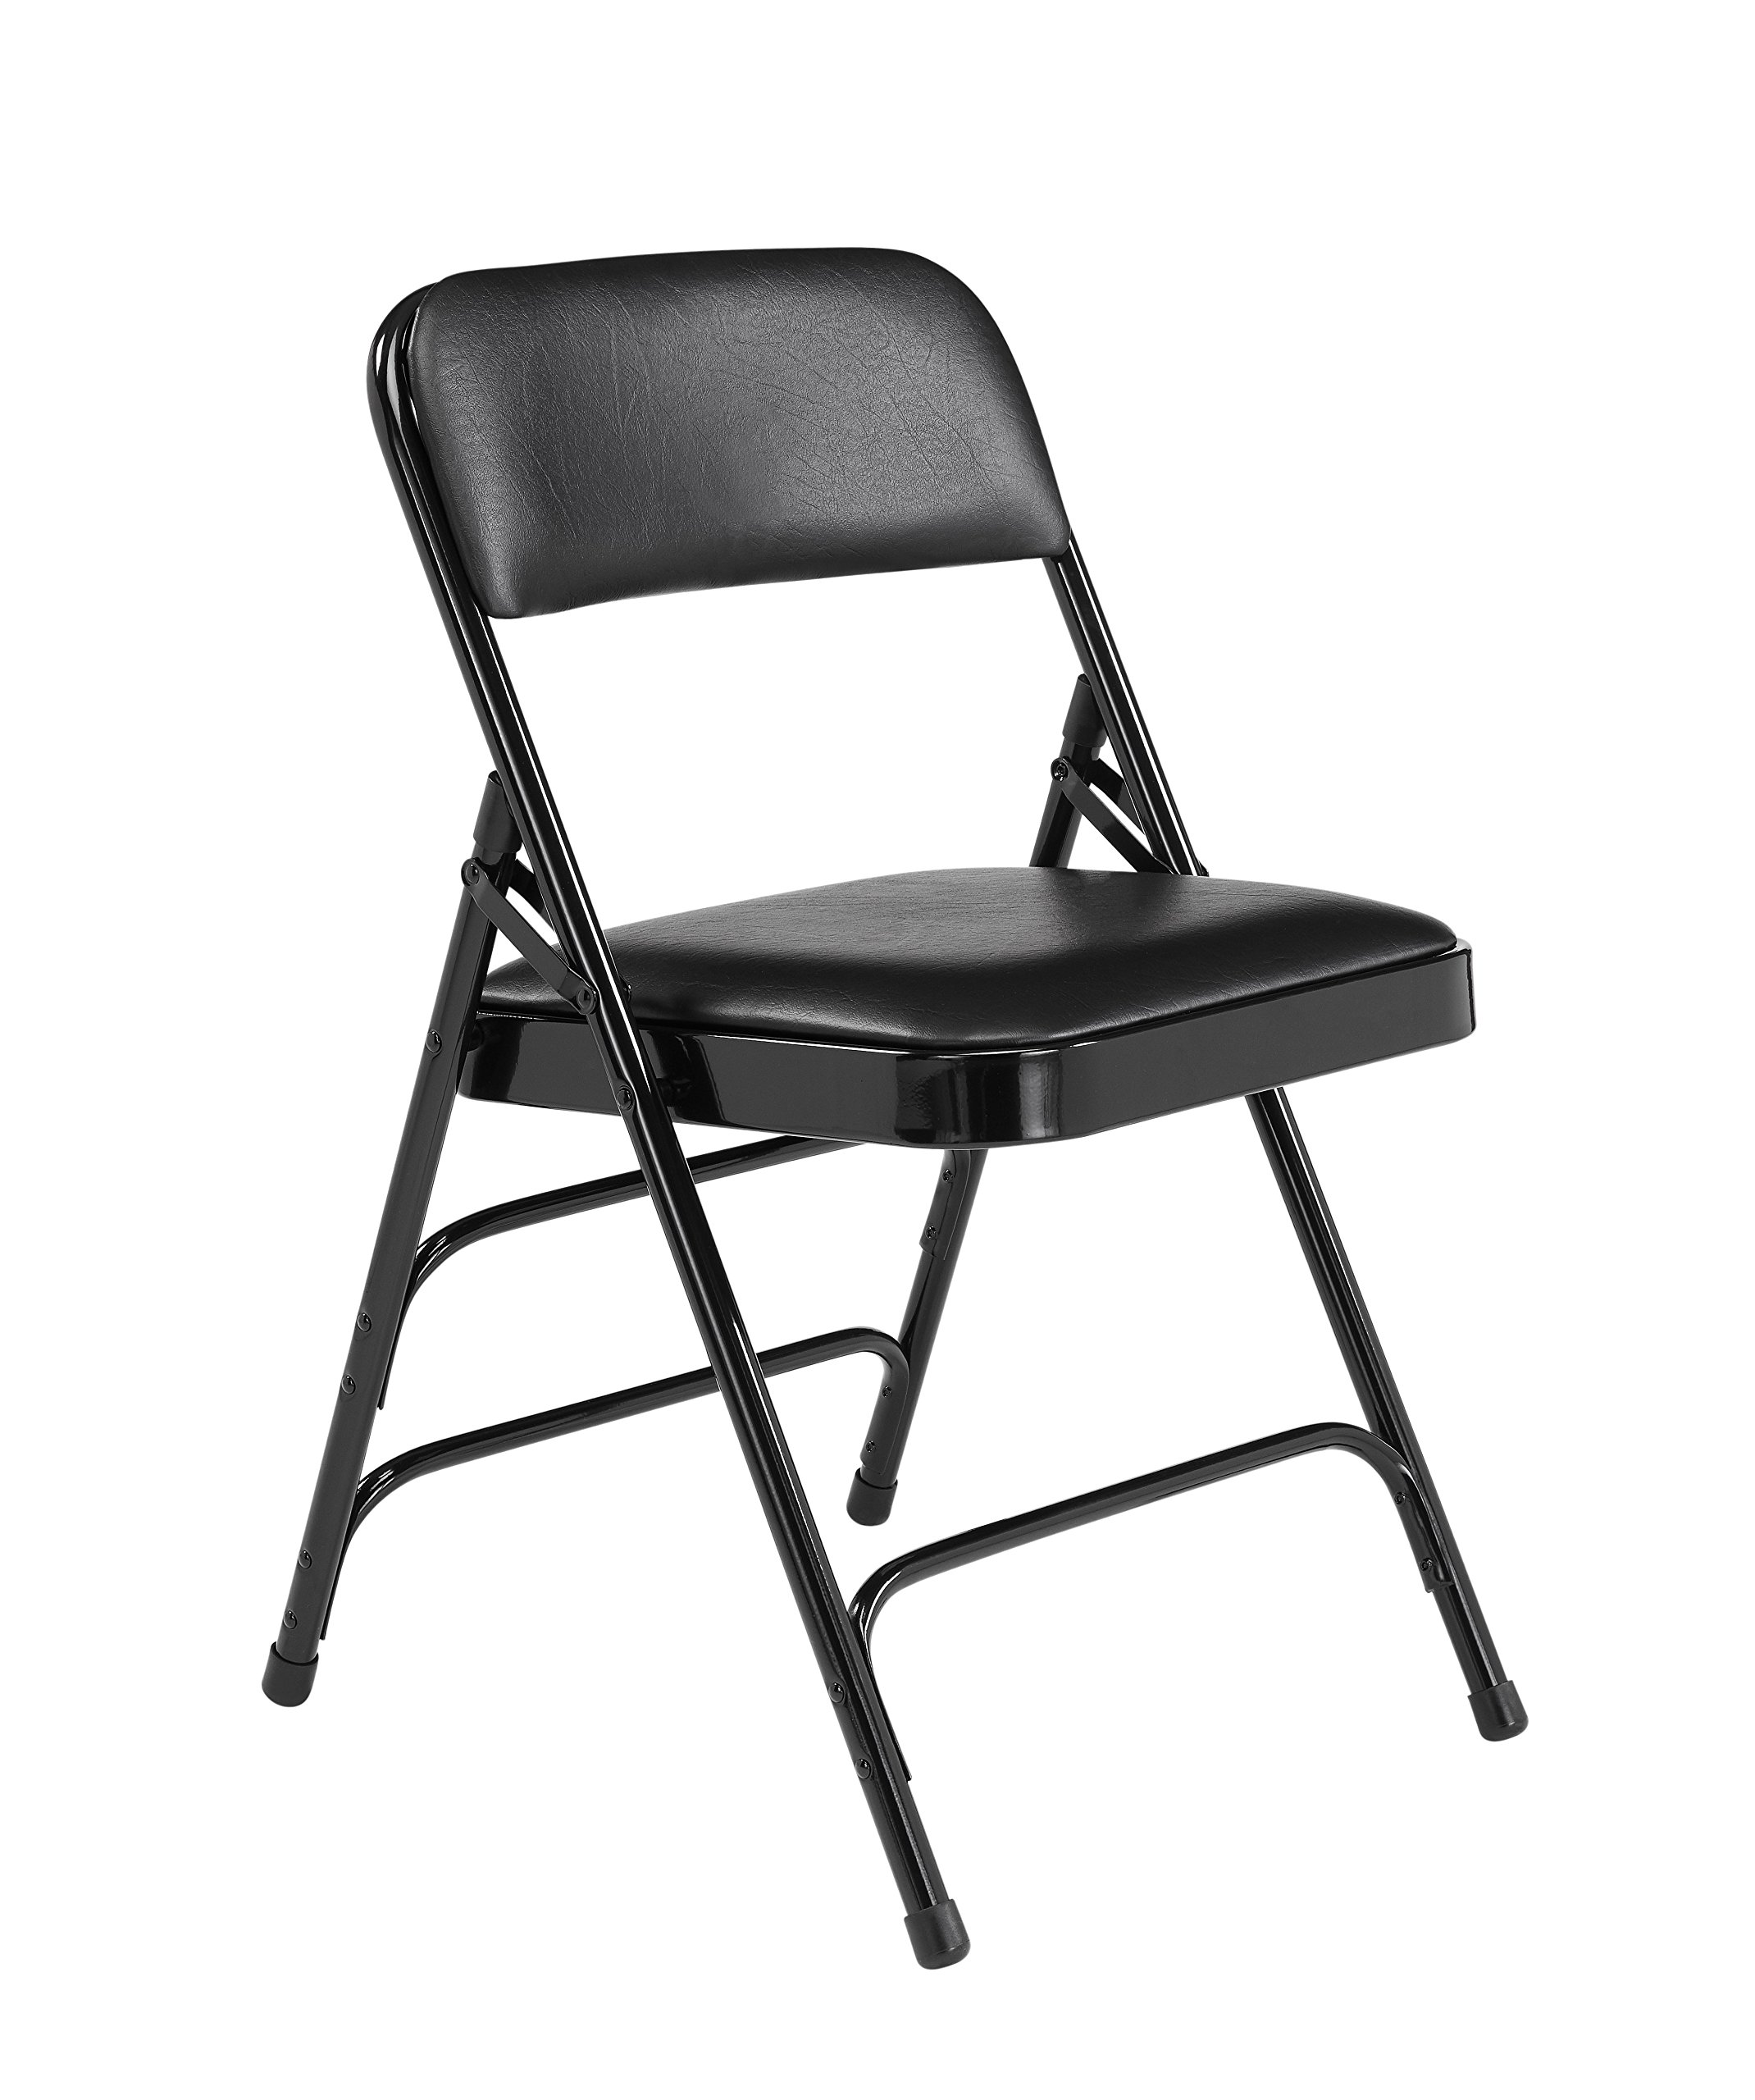 National Public Seating 1310 NPS Vinyl Padded Triple Brace Folding Chair, Steel (Pack of 4) by National Public Seating